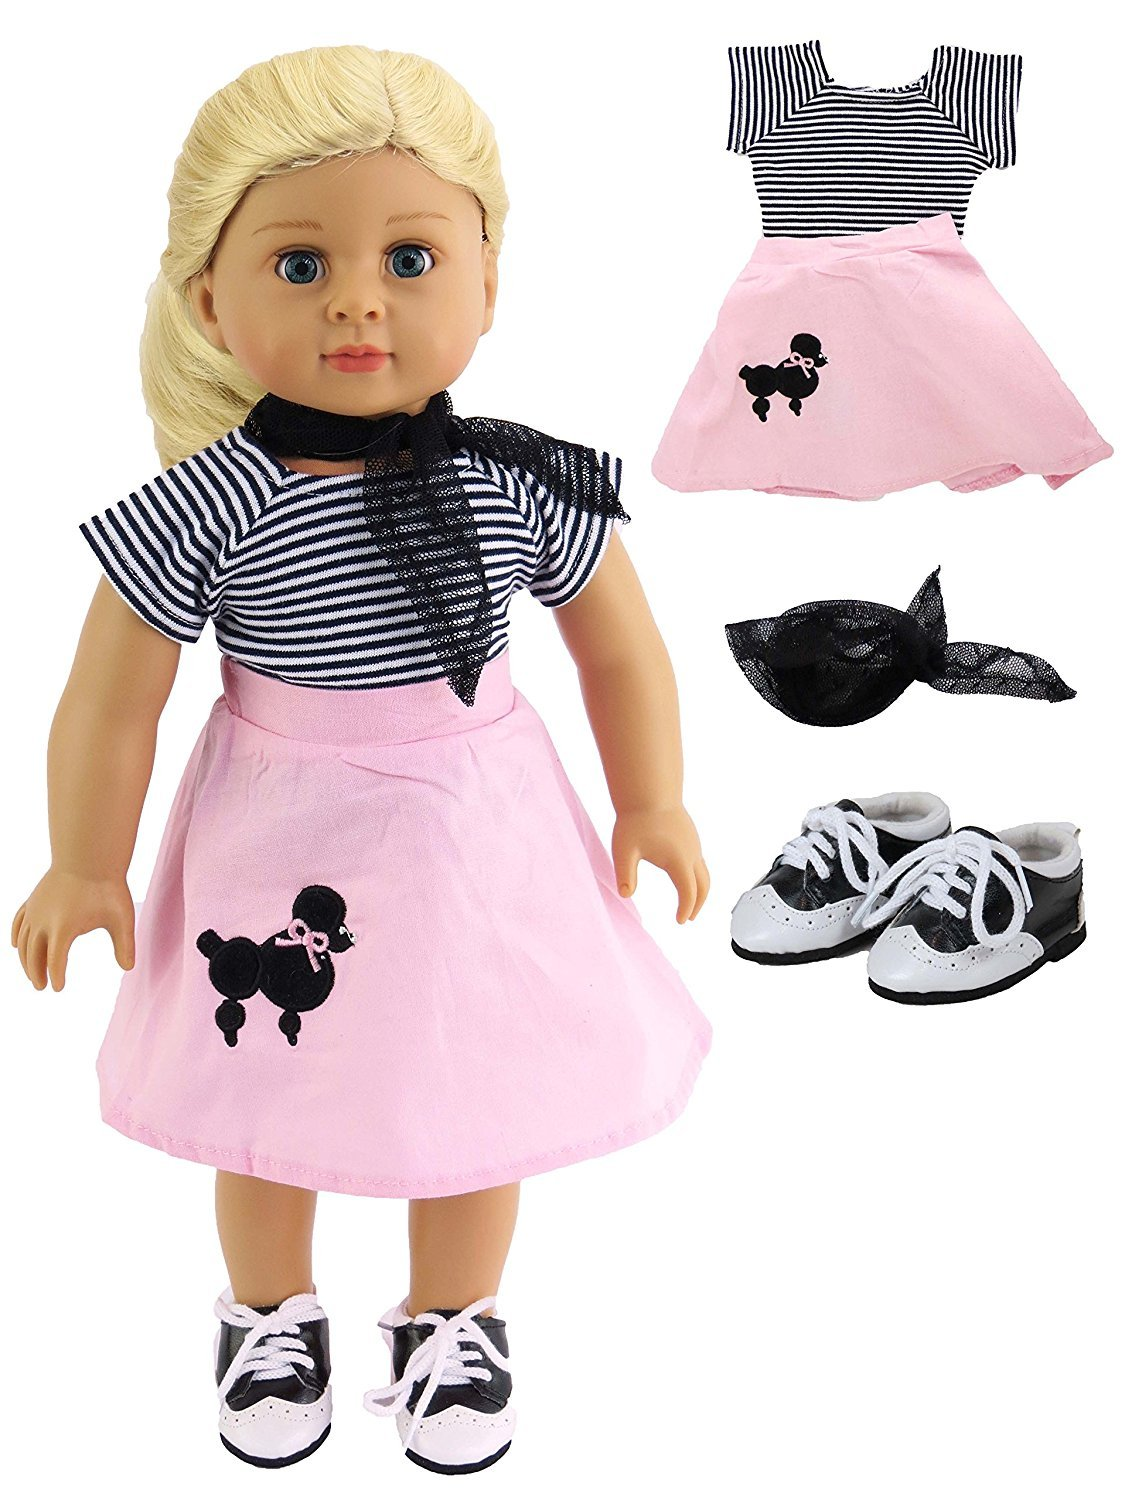 Classic Poodle Skirt Outfit   Includes Shirt,Shoes,Skirt,& Scarf  Fits 18'' American Girl Dolls, Madame Alexander, Our Generation, etc.   18 Inch Doll Clothes